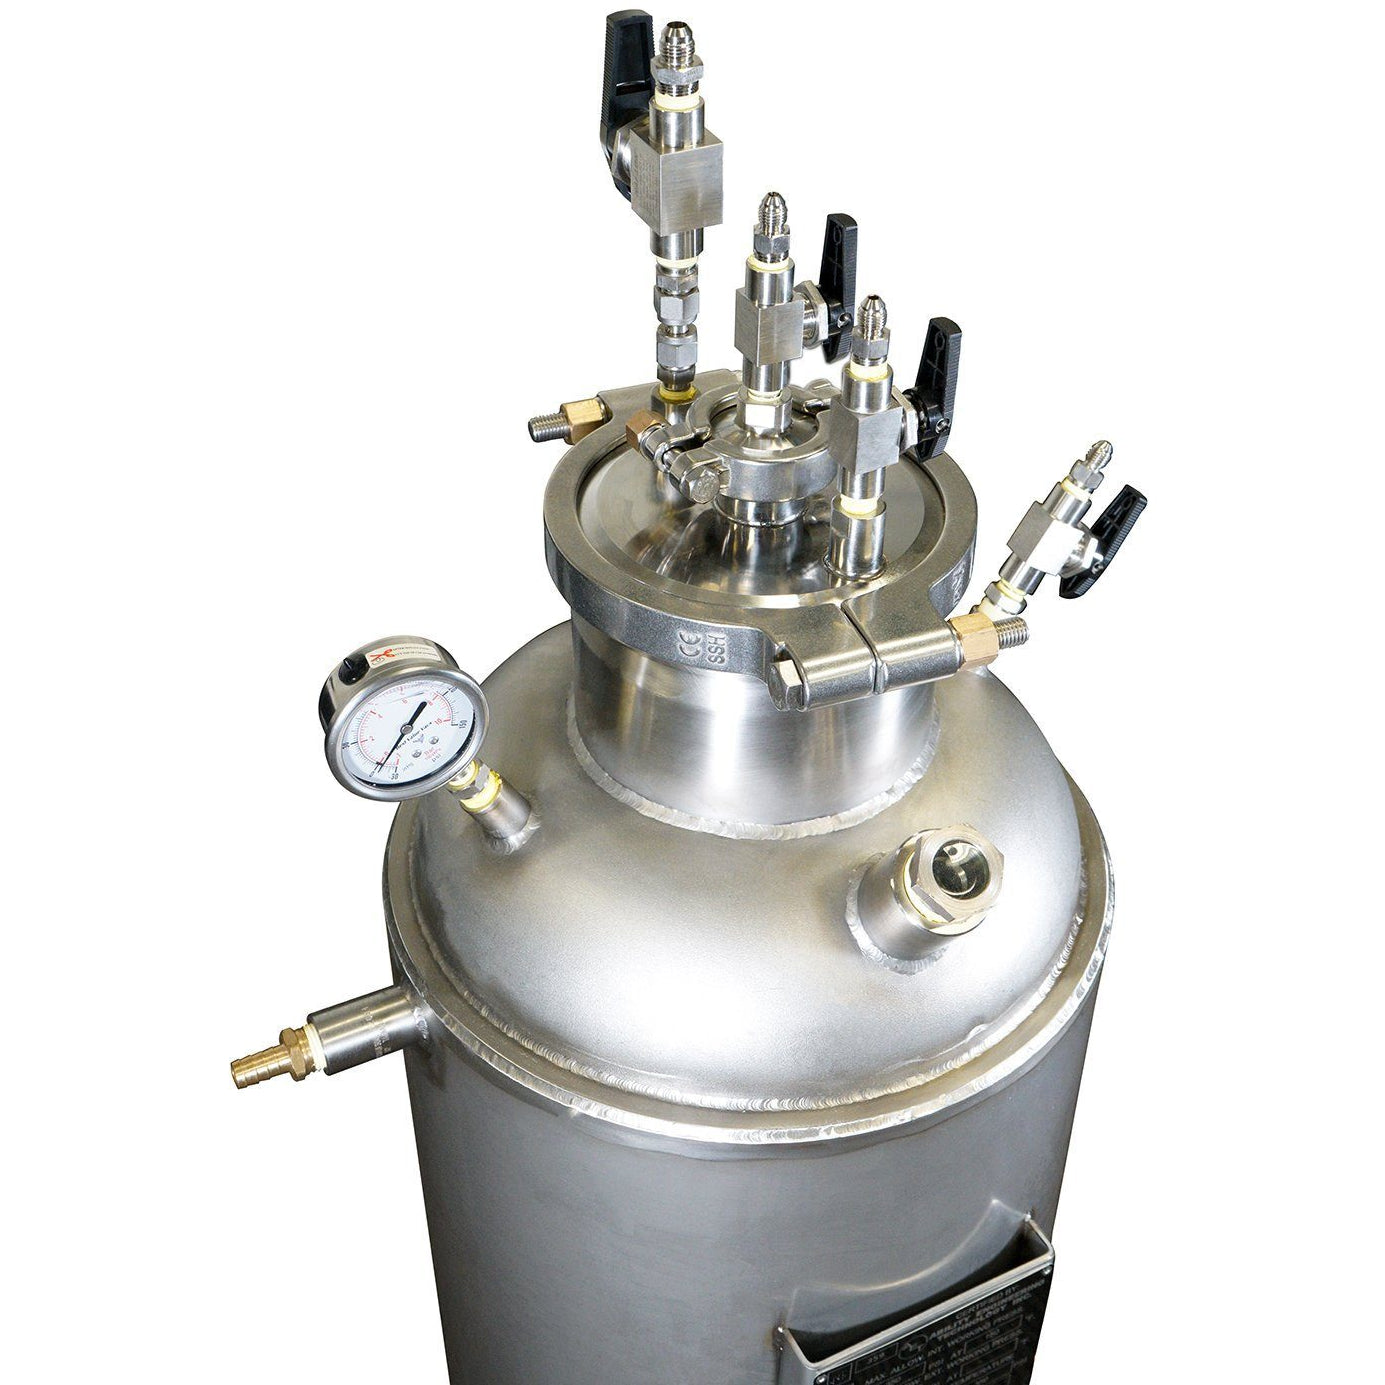 ASME Certified 10LB Jacketed Collection Base 304L with Diptube Shop All Categories BVV